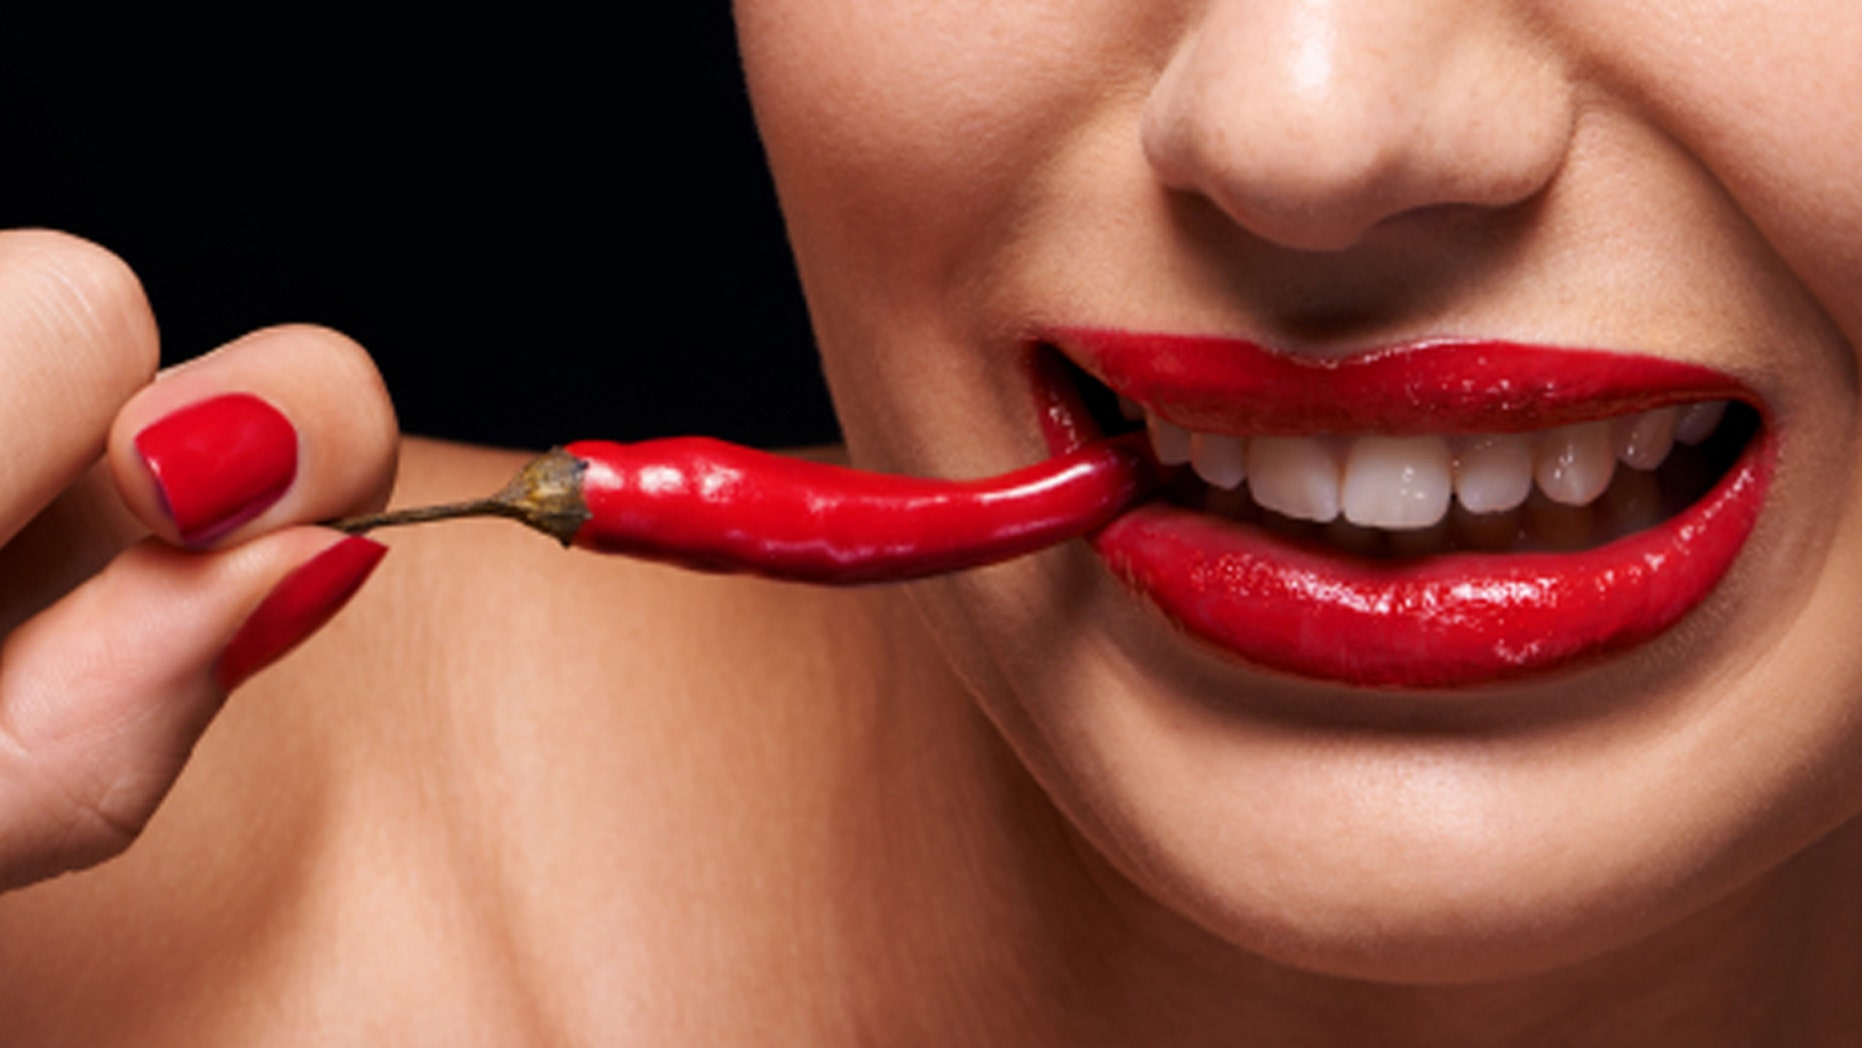 Why drinking water after eating spicy food is the worst thing you